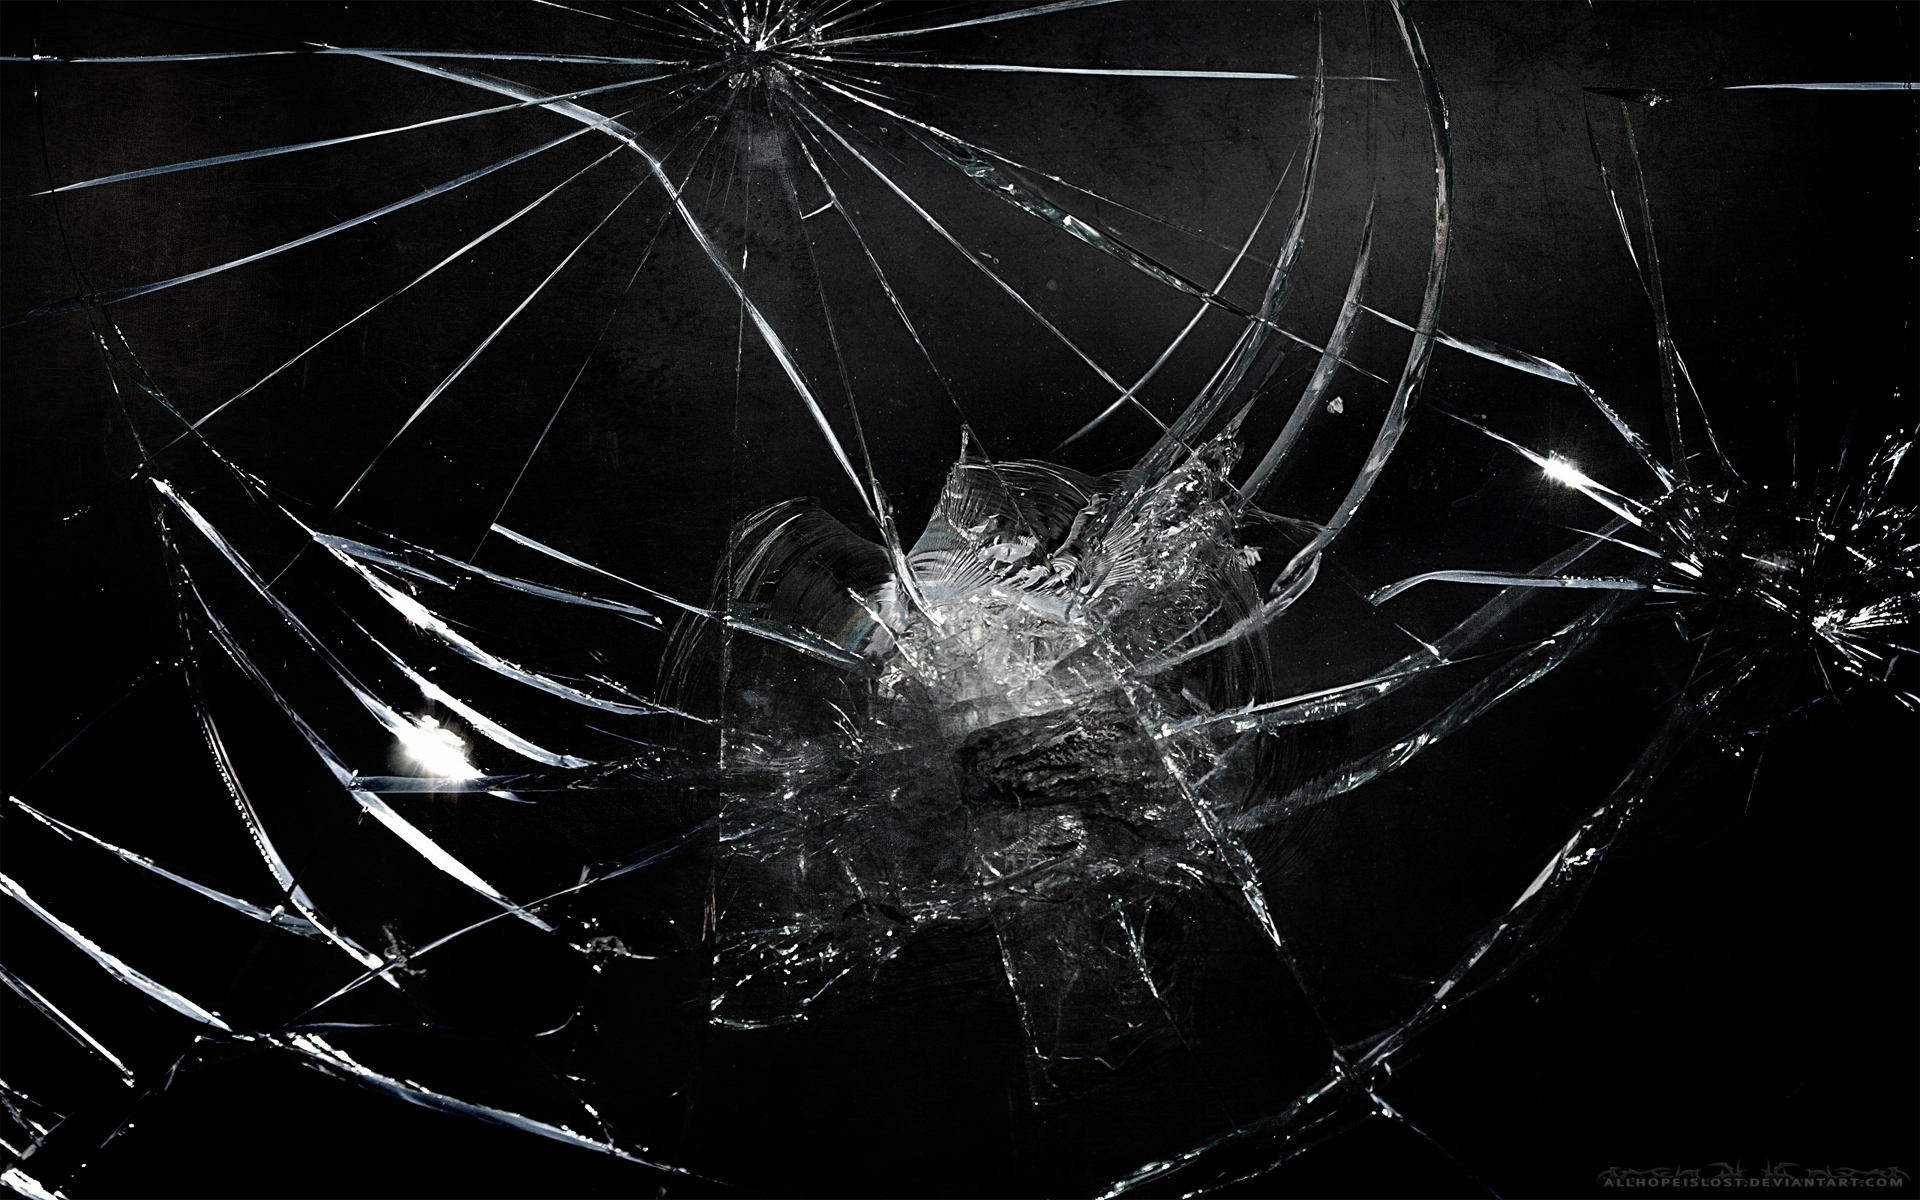 45 realistic cracked and broken screen wallpapers - technosamrat